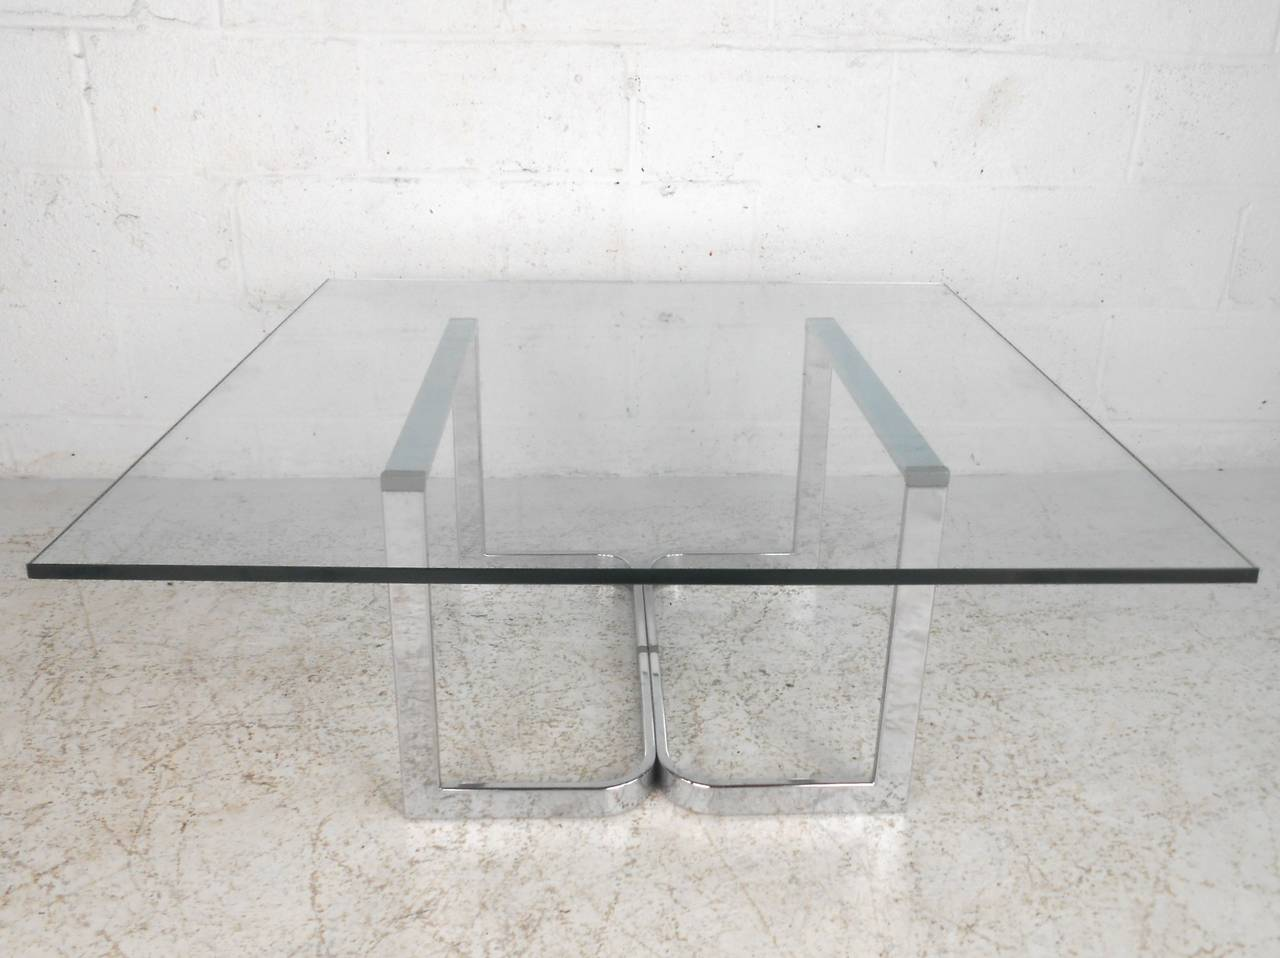 This unique midcentury coffee table makes a sturdy and stylish centre table for any seating area. The heavy flat bar chrome frame comfortably supports the large square glass top. Wonderful lines and subtle style combine for a wonderful example of